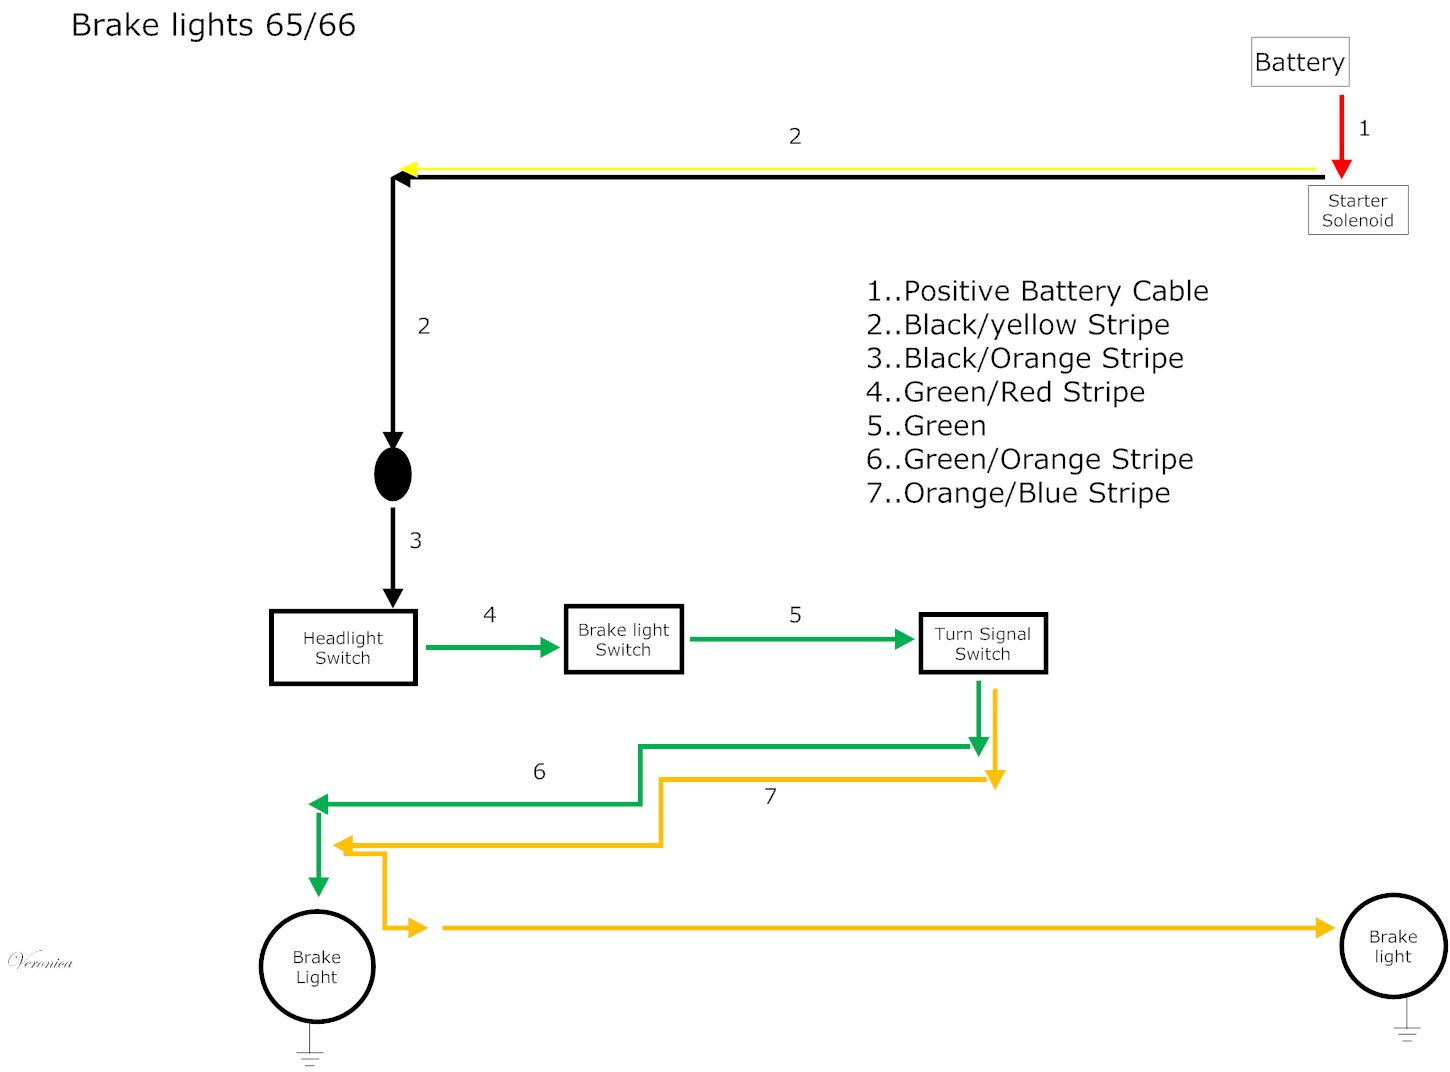 Stop Light Switch Wiring Diagram : The care and feeding of ponies mustang brake lights